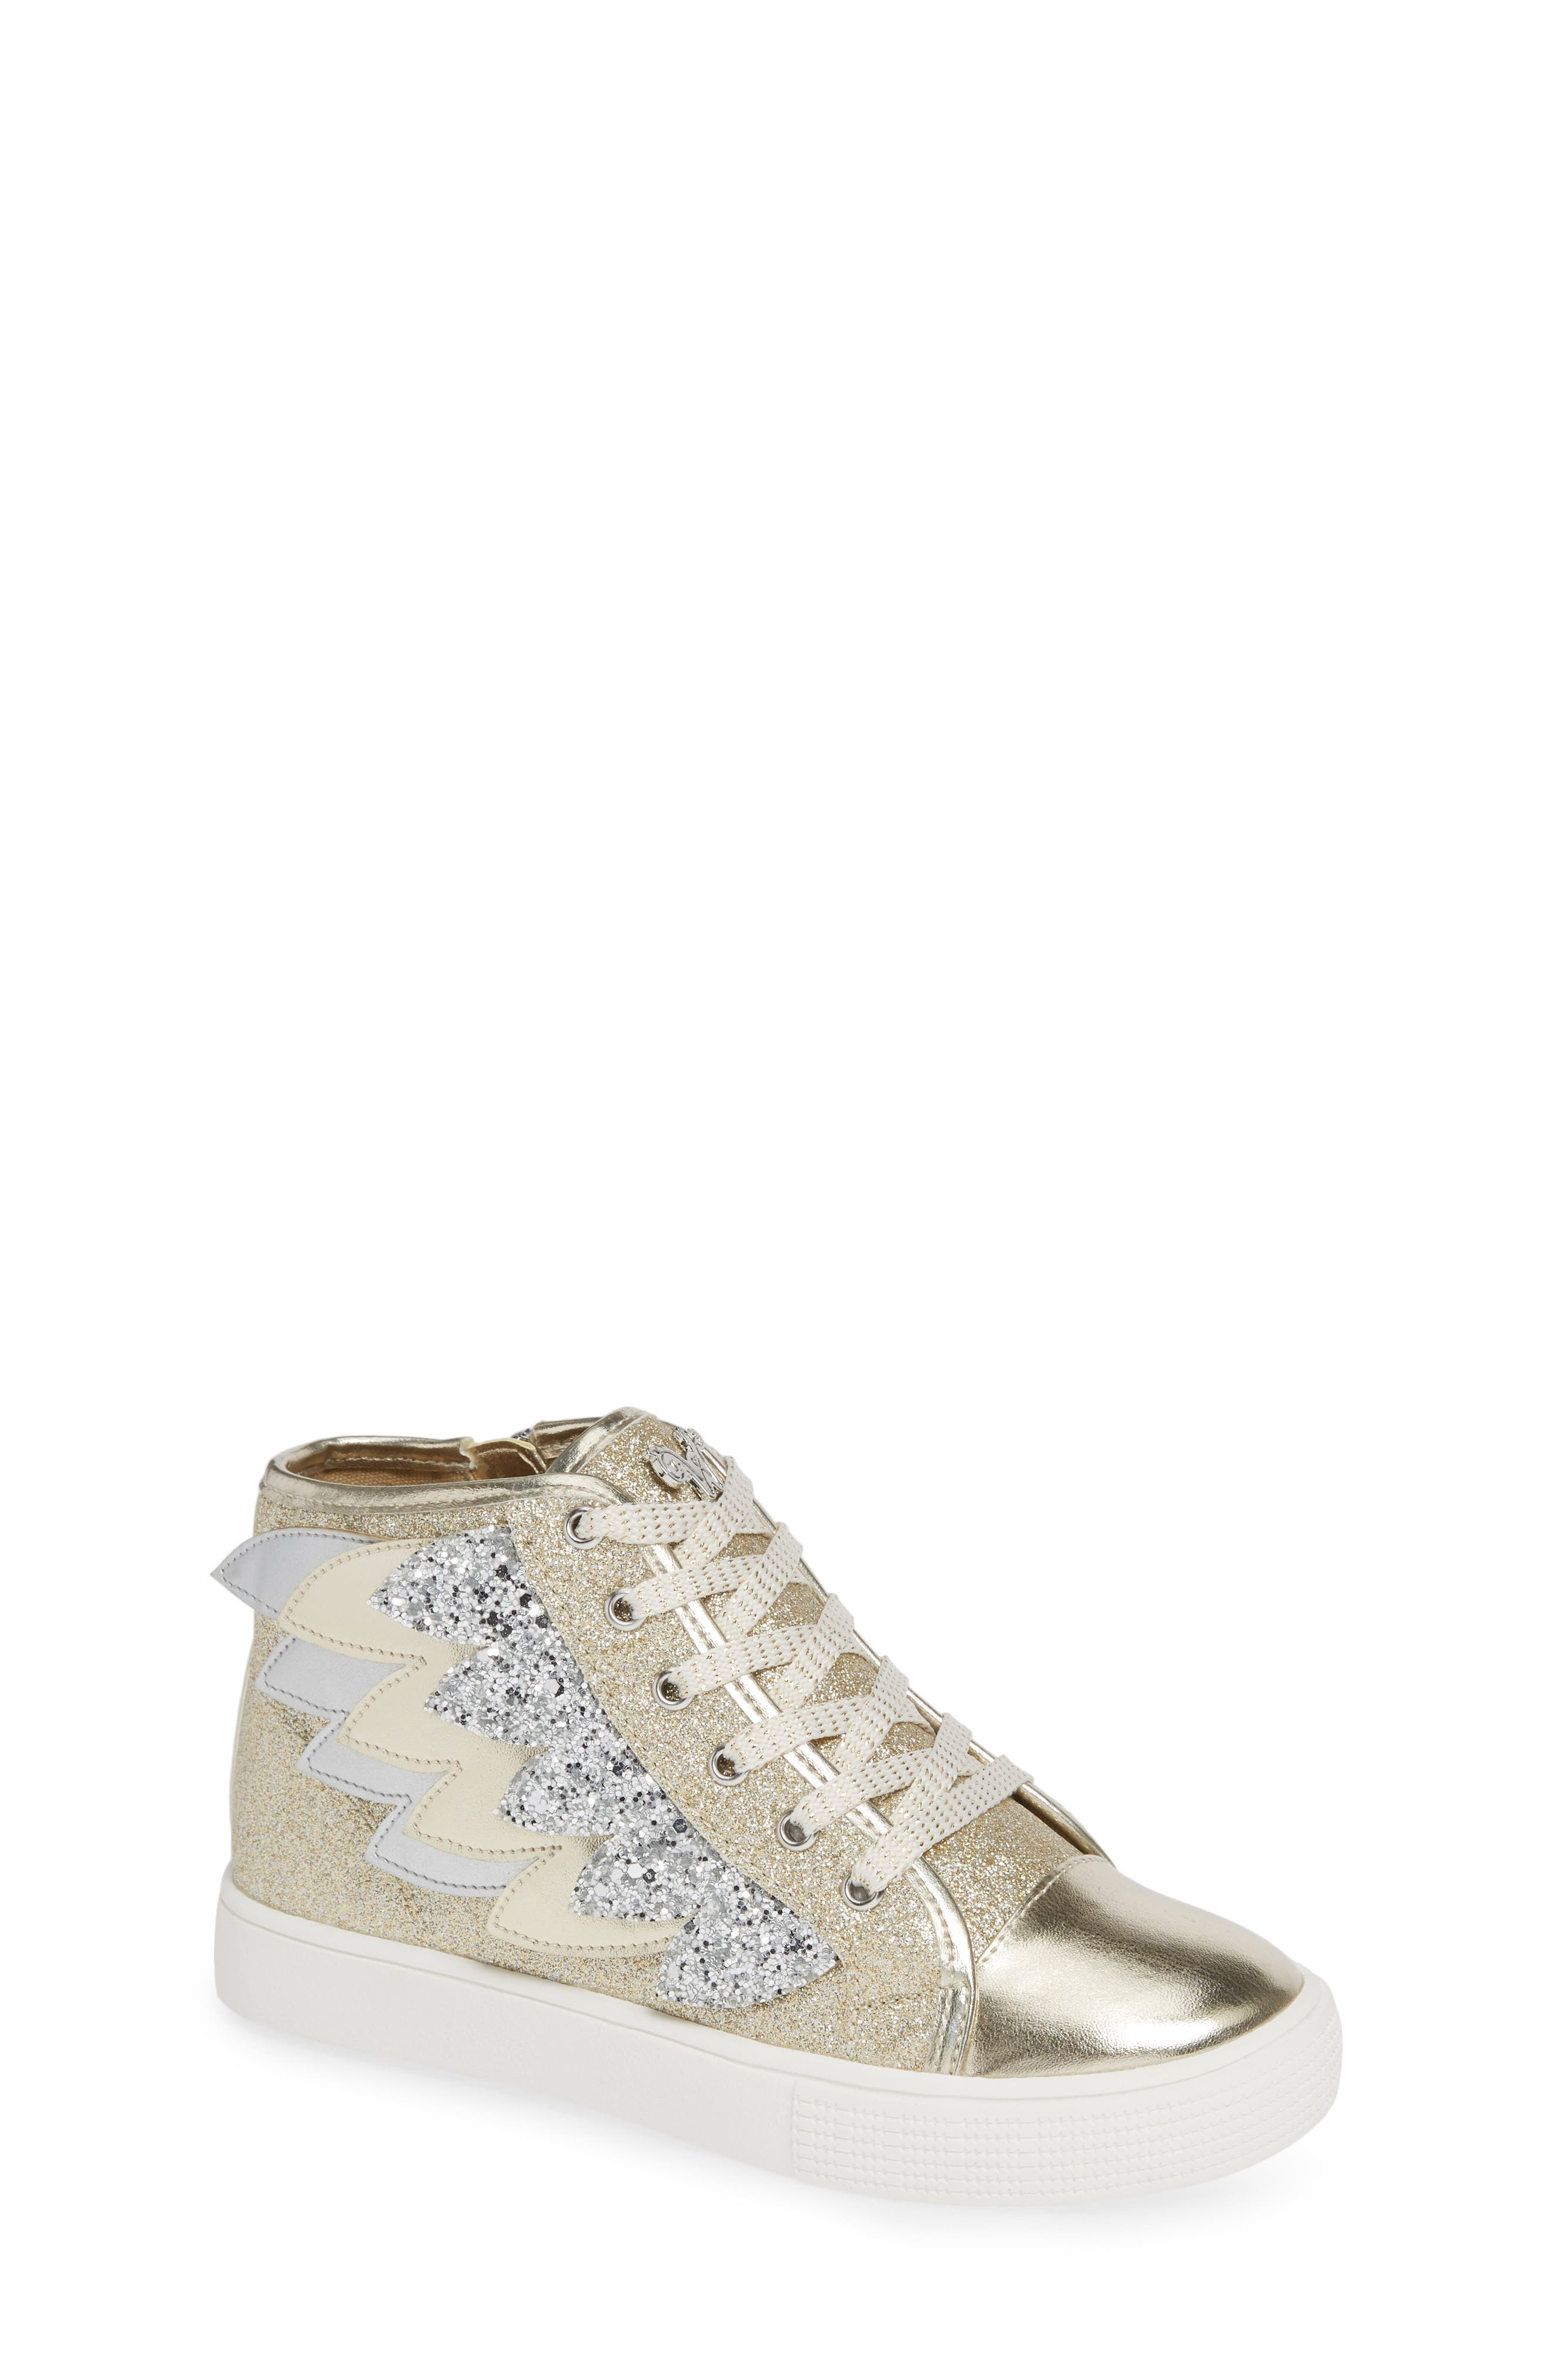 Willa Winged Glitter High Top Sneaker,                             Main thumbnail 1, color,                             SOFT GOLD SILVER